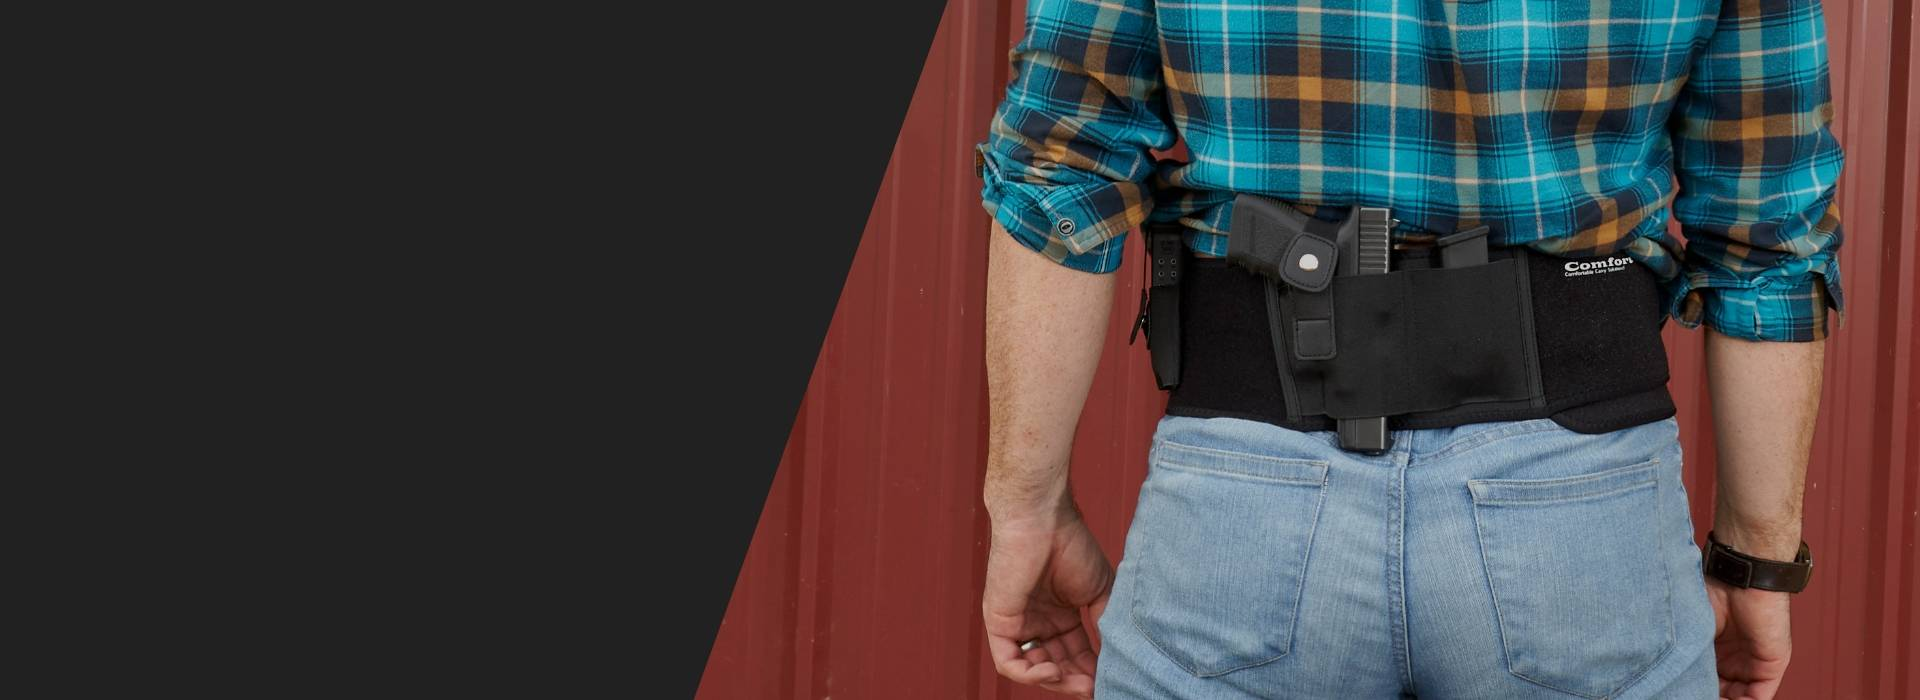 man using belly holster concealed carry